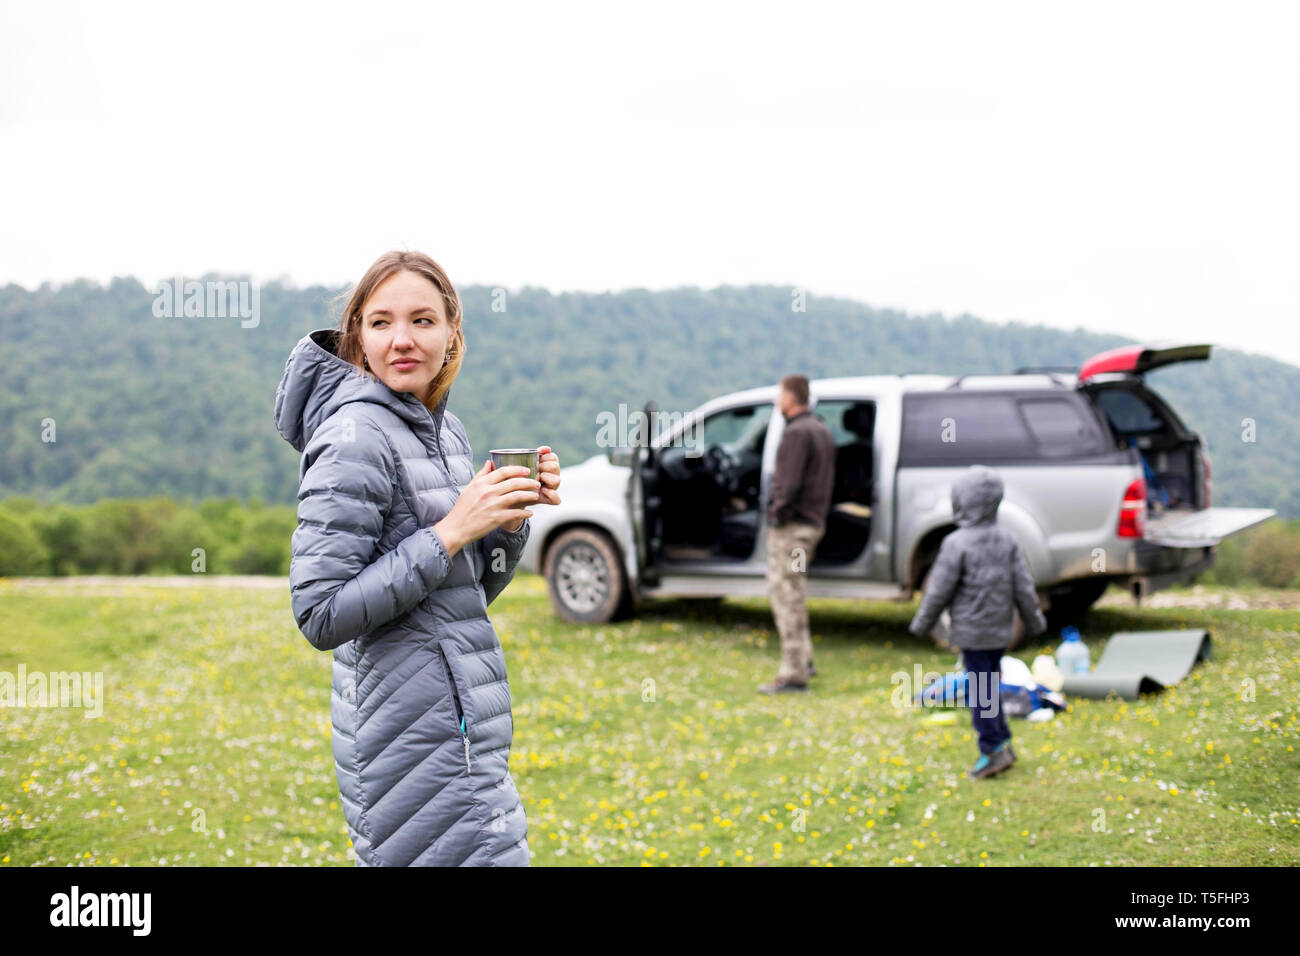 In the foreground, a woman with a cupboard in the background is an SUV with open trunk and a man with a child unloads the car - Stock Image